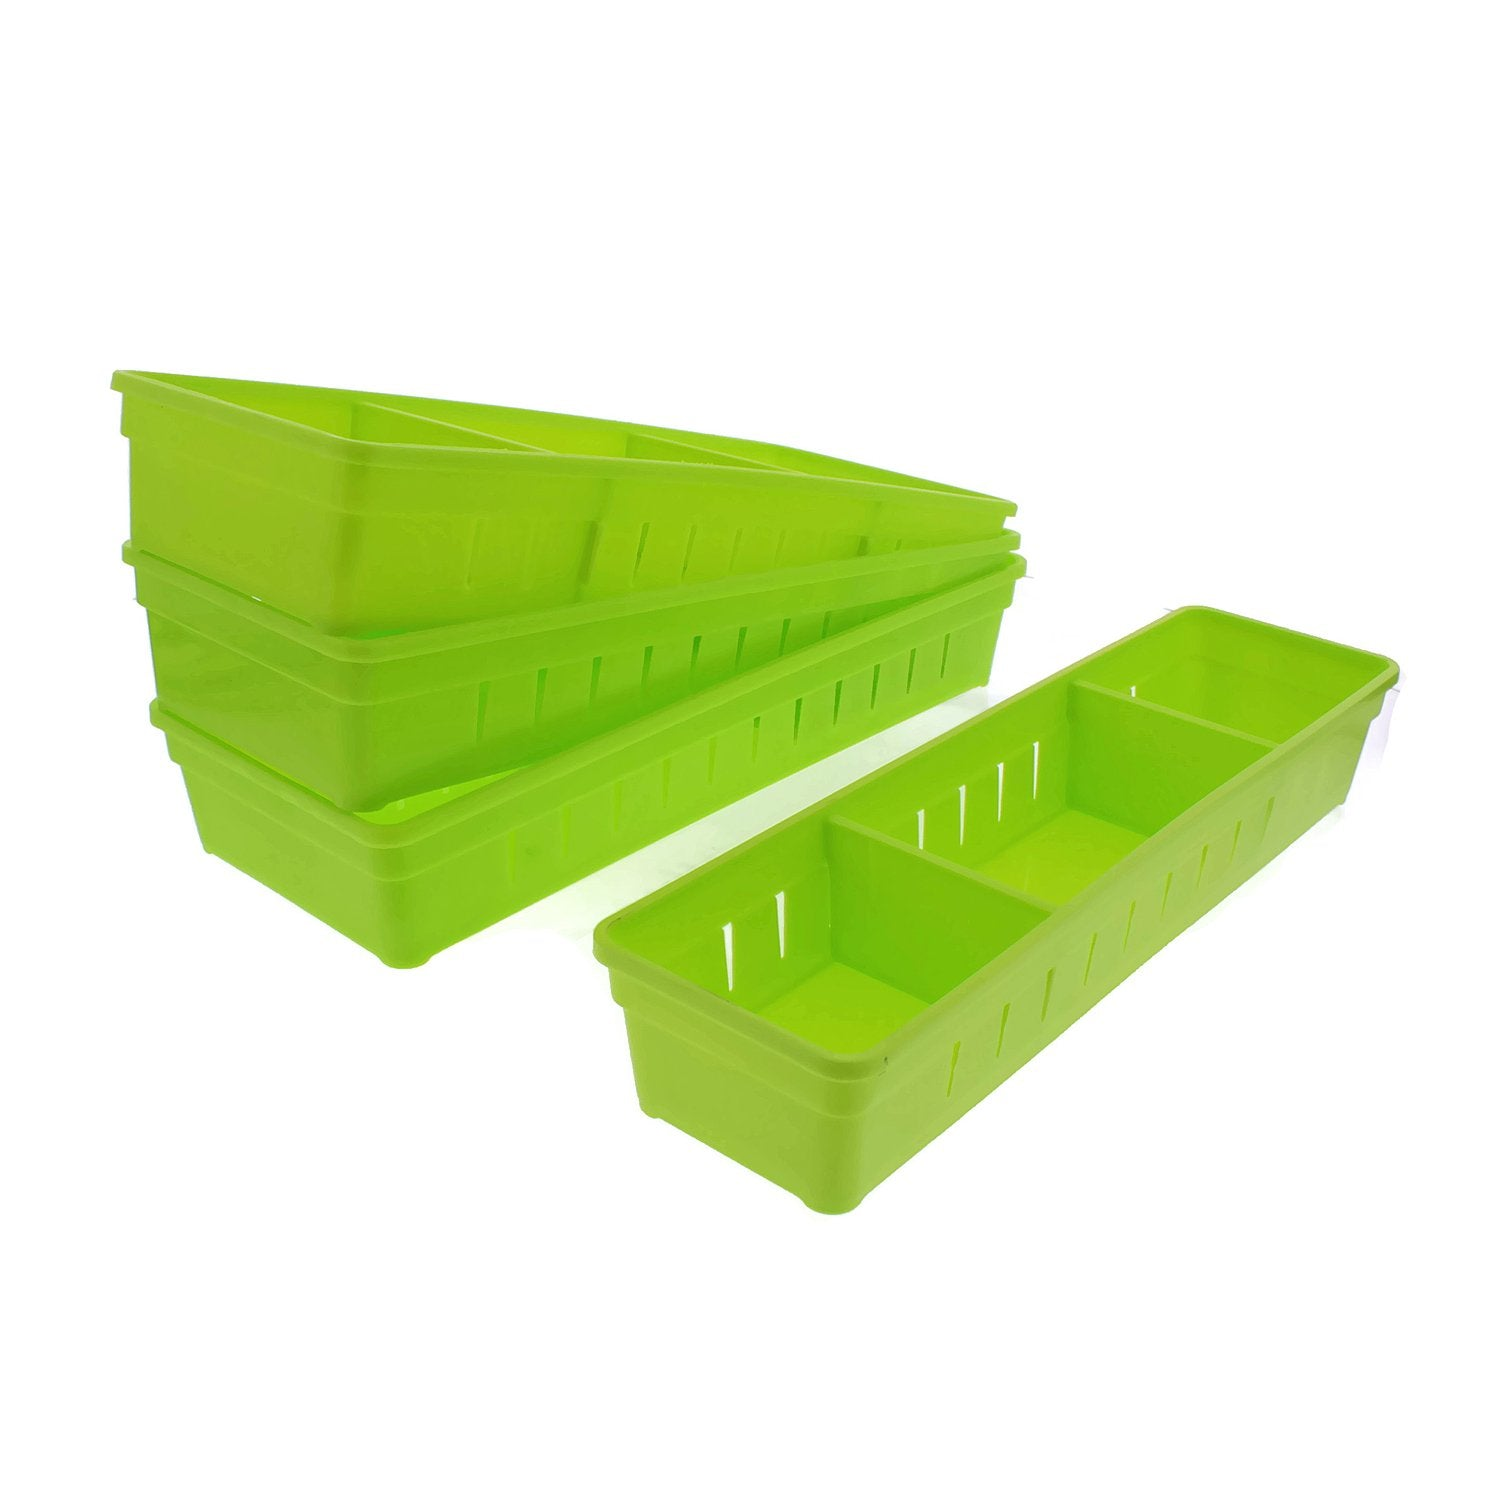 Cheftor Plastic Storage Drawers Drawer Organizers with Dividers for Stationery, Makeup, Silverware, set of 4 (Green)